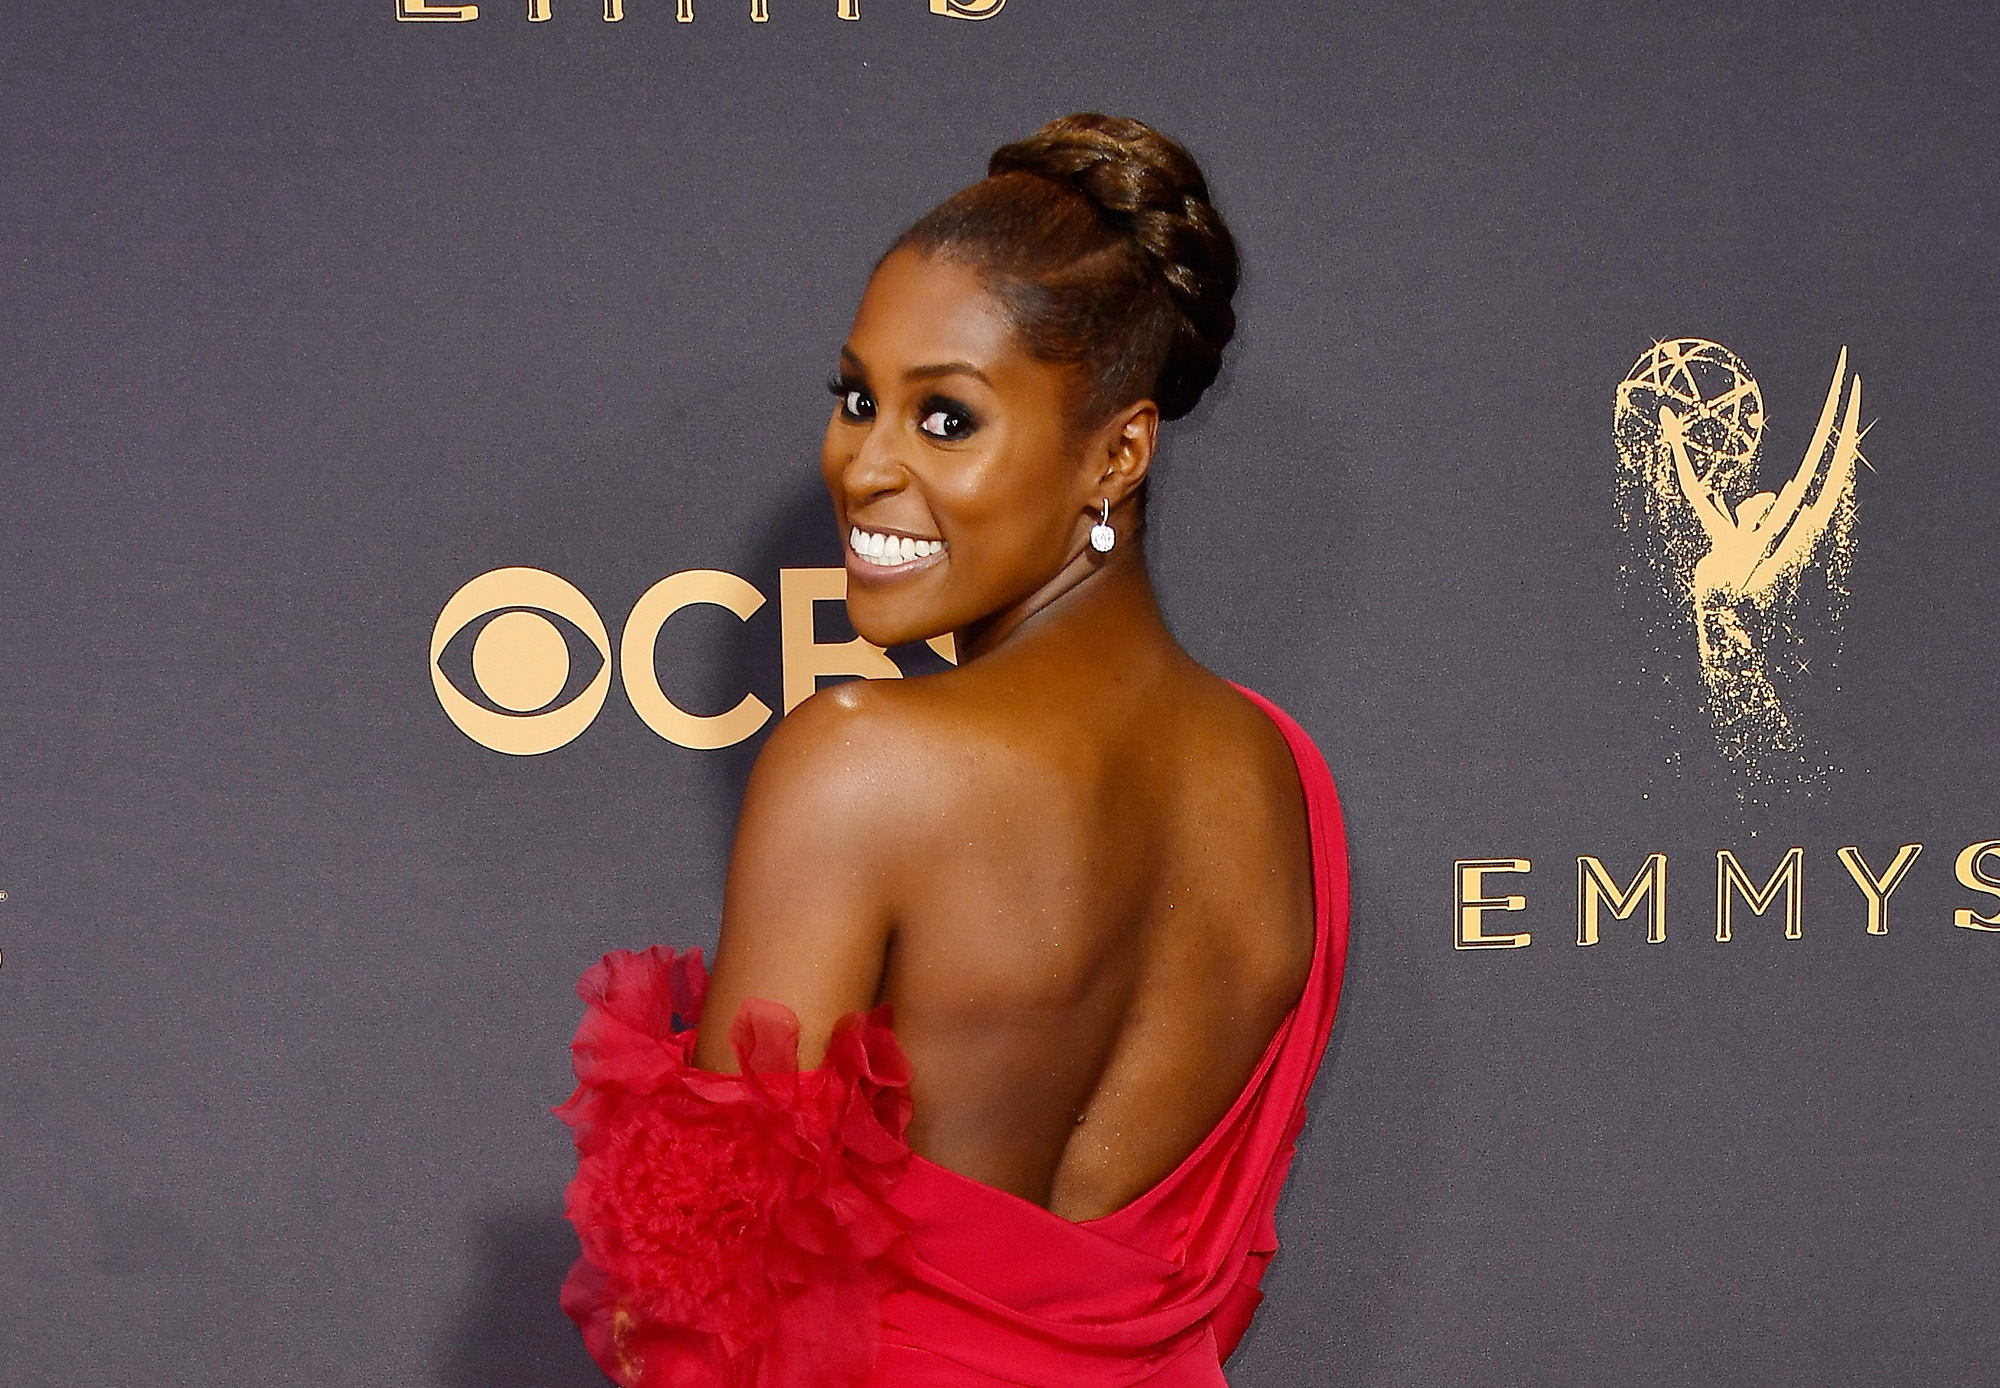 LOS ANGELES, CA - SEPTEMBER 17: Actor Issa Rae attends the 69th Annual Primetime Emmy Awards at Microsoft Theater on September 17, 2017 in Los Angeles, California.  (Photo by Frazer Harrison/Getty Images)